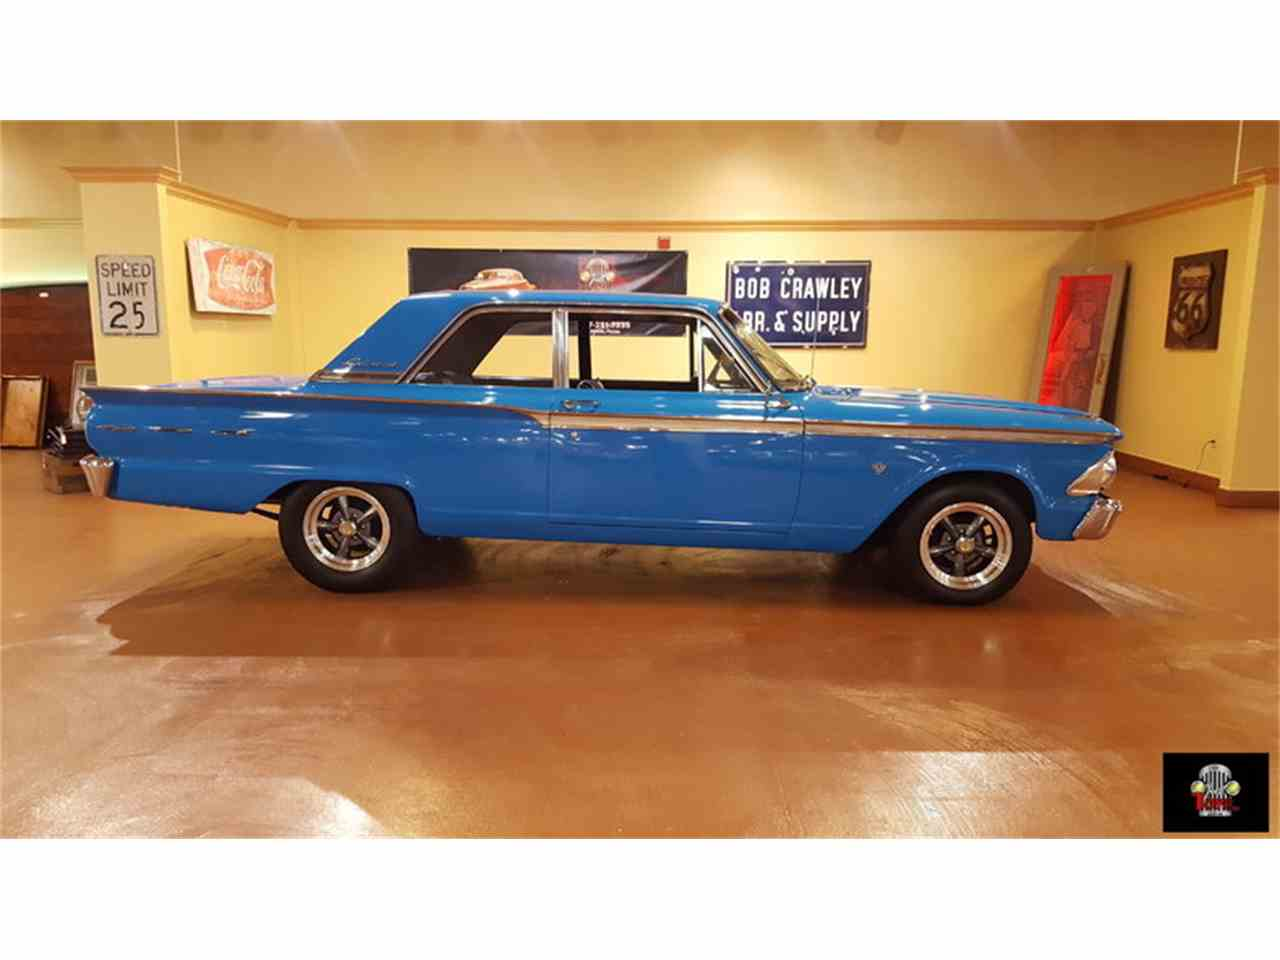 21485 Dodge Hemi Dart Gt Pro Touring Resto Mod One Of A Kind Goodguy039s Winner besides 28 RS COUPE 116026 likewise 1969 FORD MUSTANG MACH 1 FASTBACK 139080 together with Centerpieces as well 1957 CHEVROLET BEL AIR 2 DOOR HARDTOP 174704. on rotisserie car paint